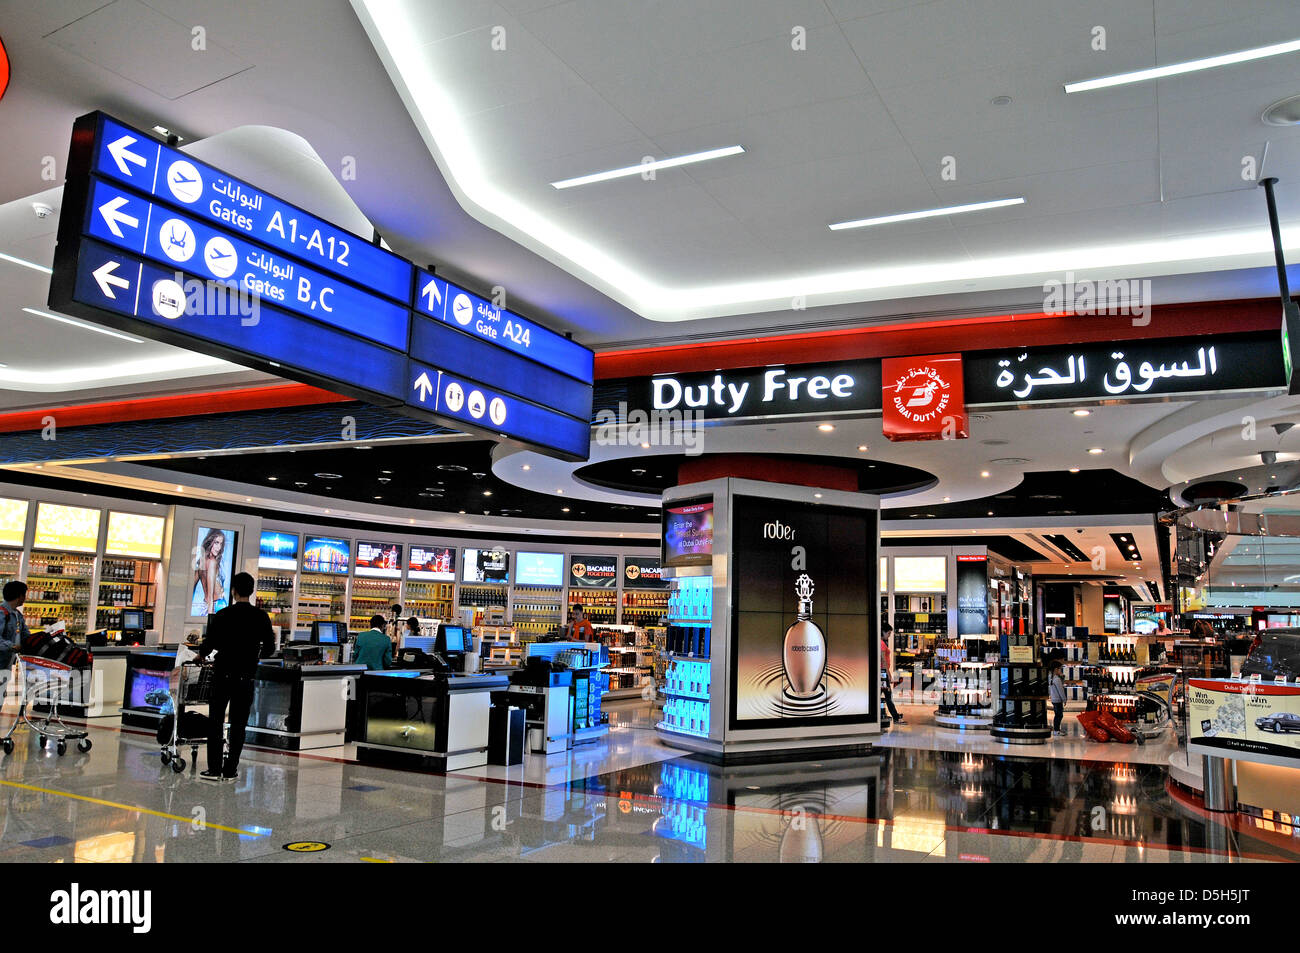 Dubai duty free shop Dubai international airport UAE - Stock Image